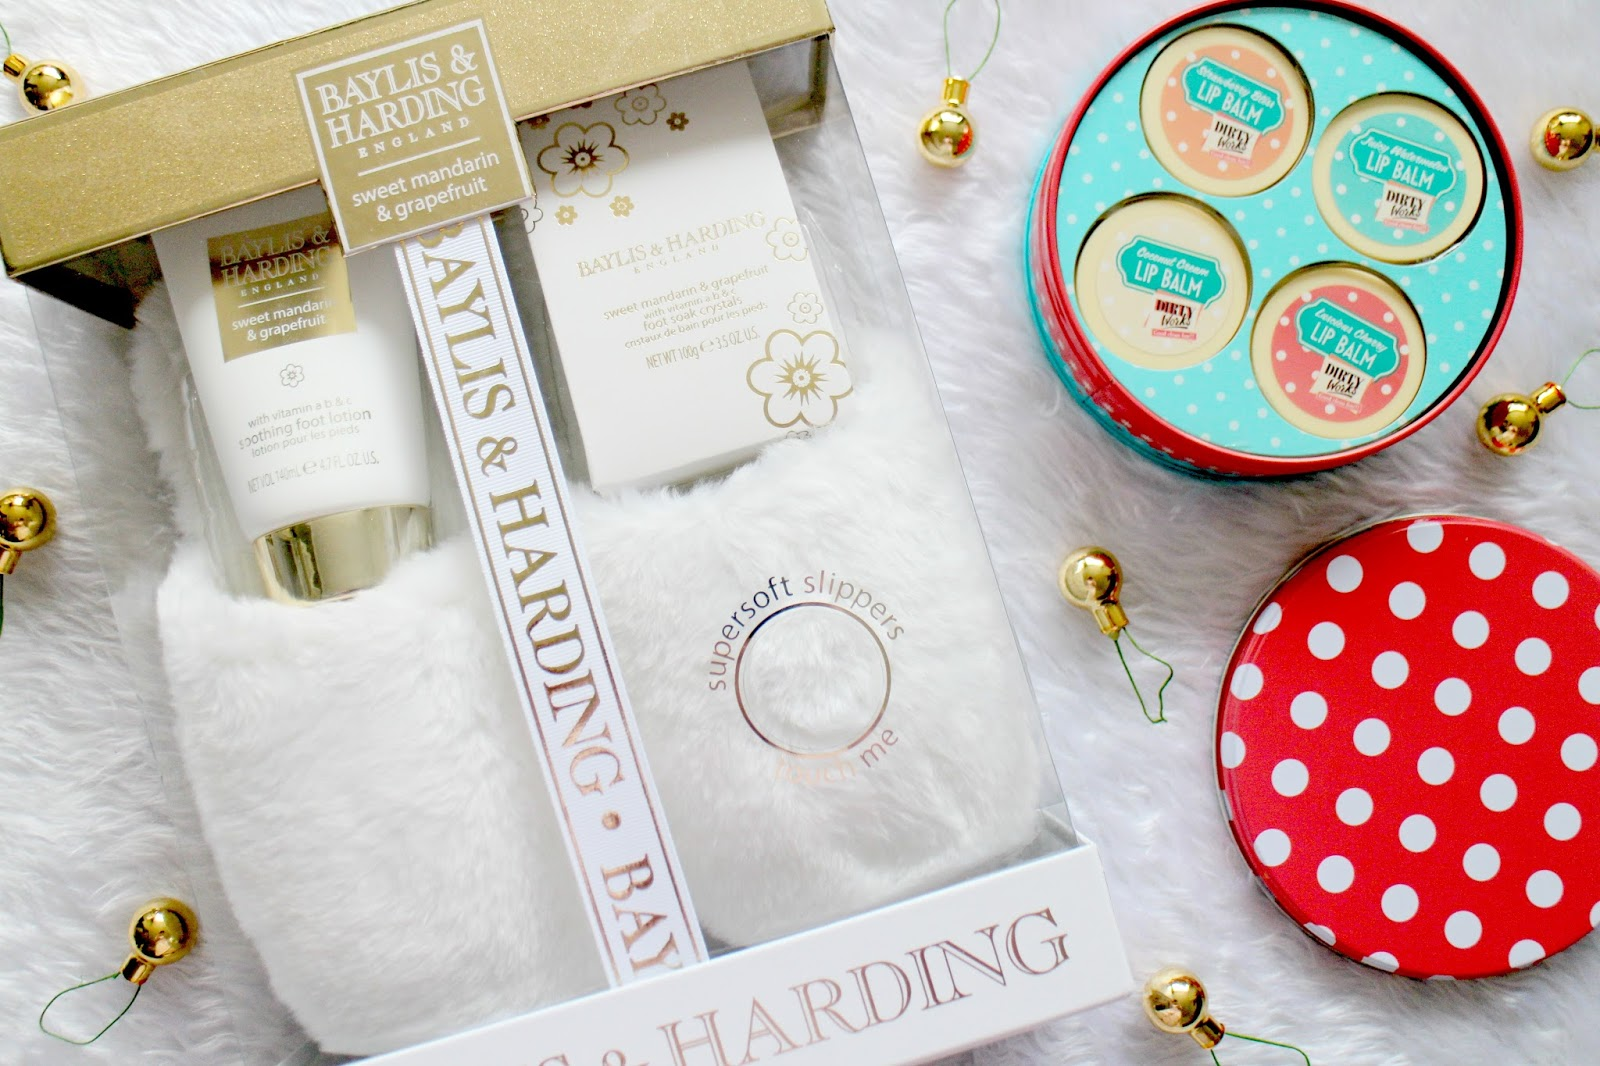 Bath and beauty gifts for her Christmas